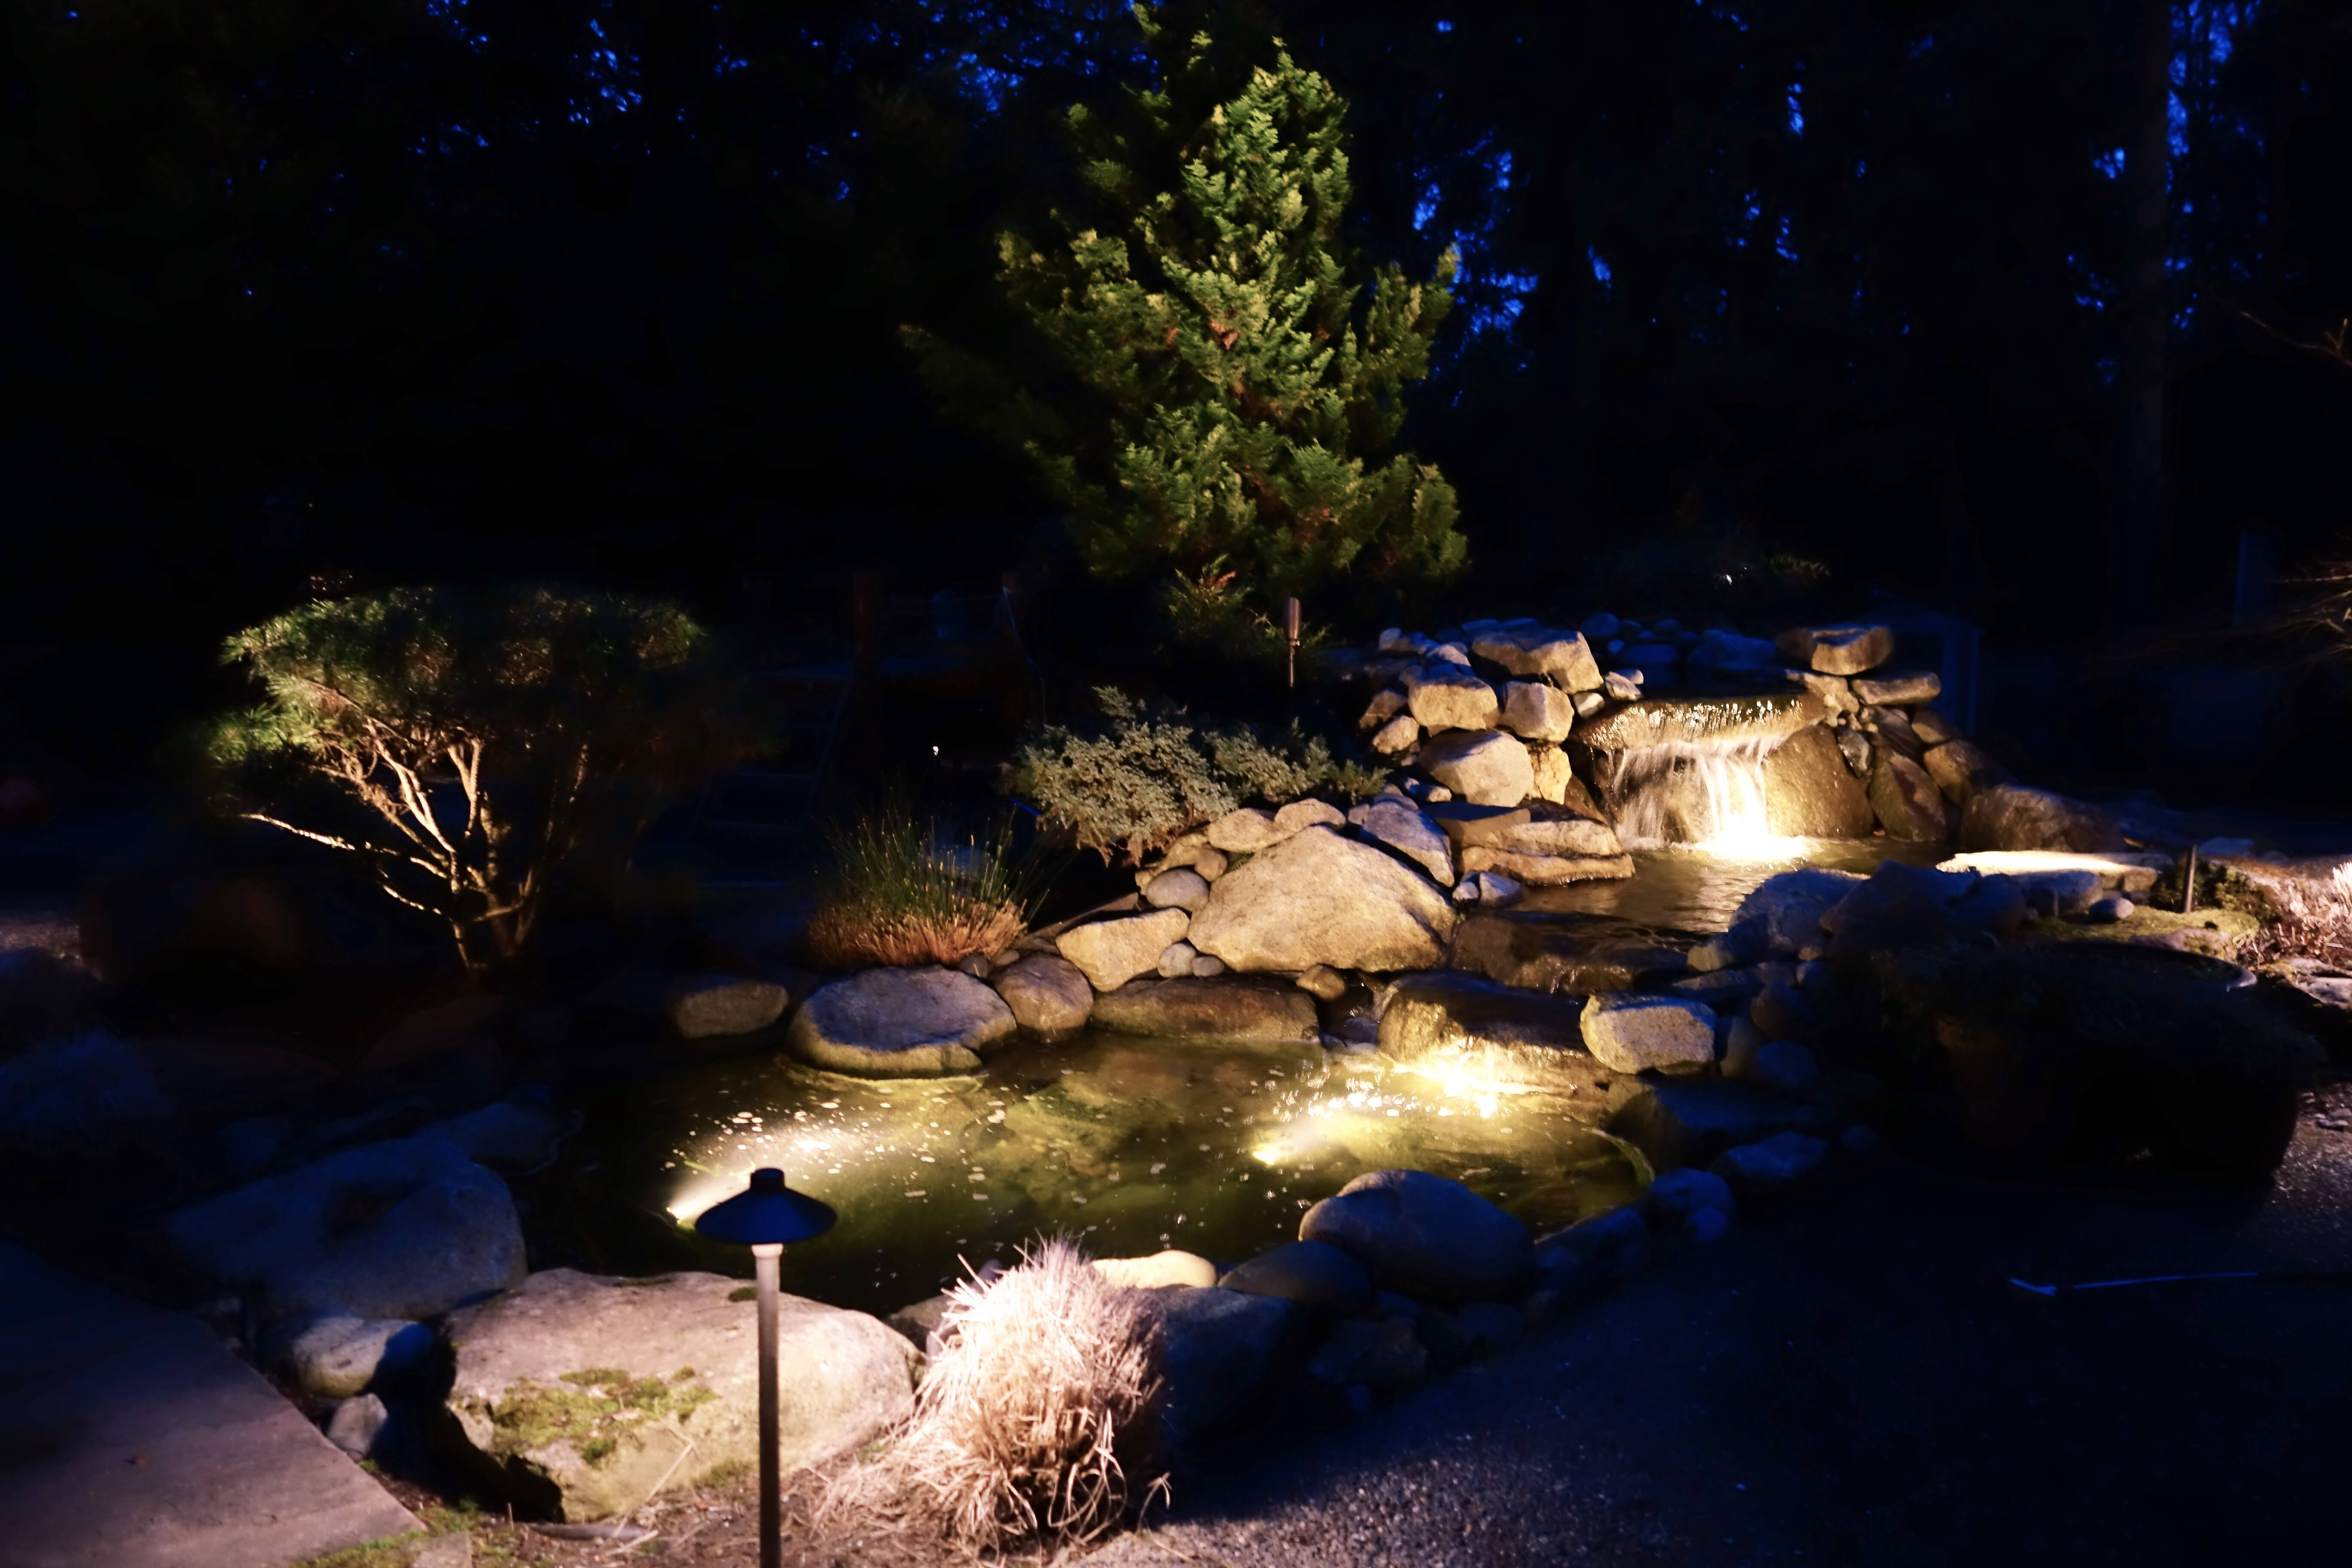 Rock and water feature lit at night